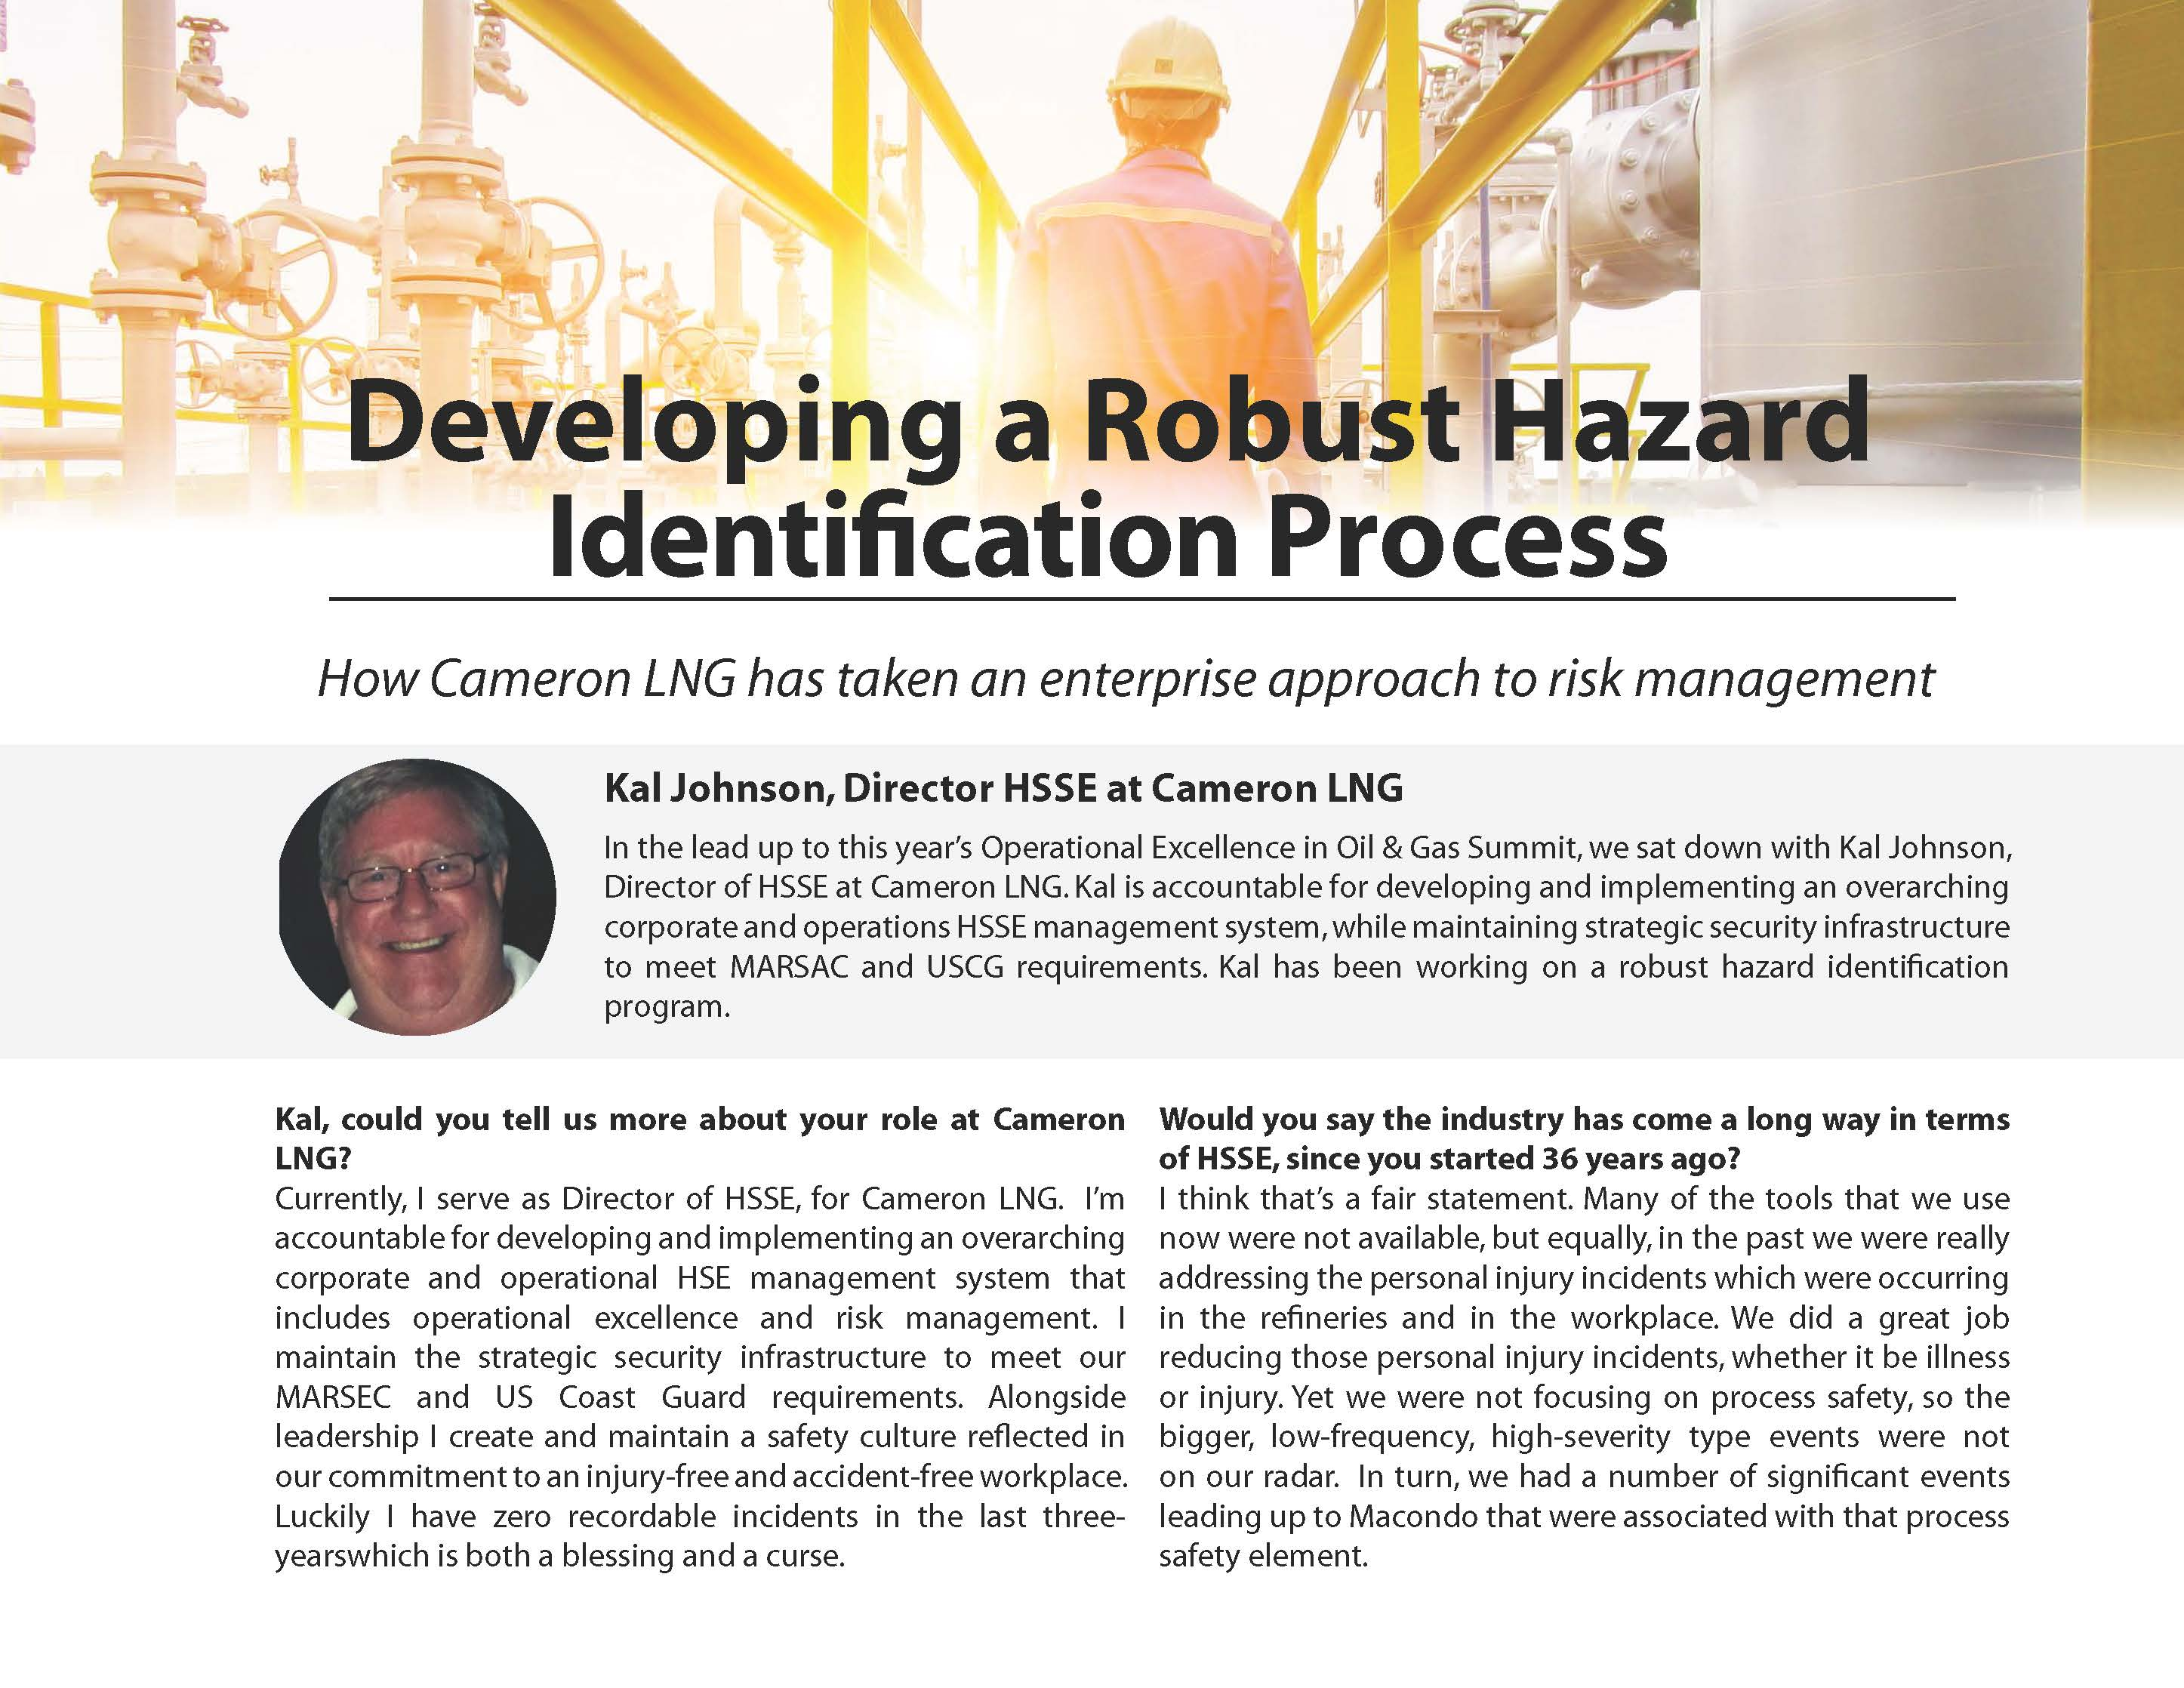 Developing a Robust Hazard Identification Process